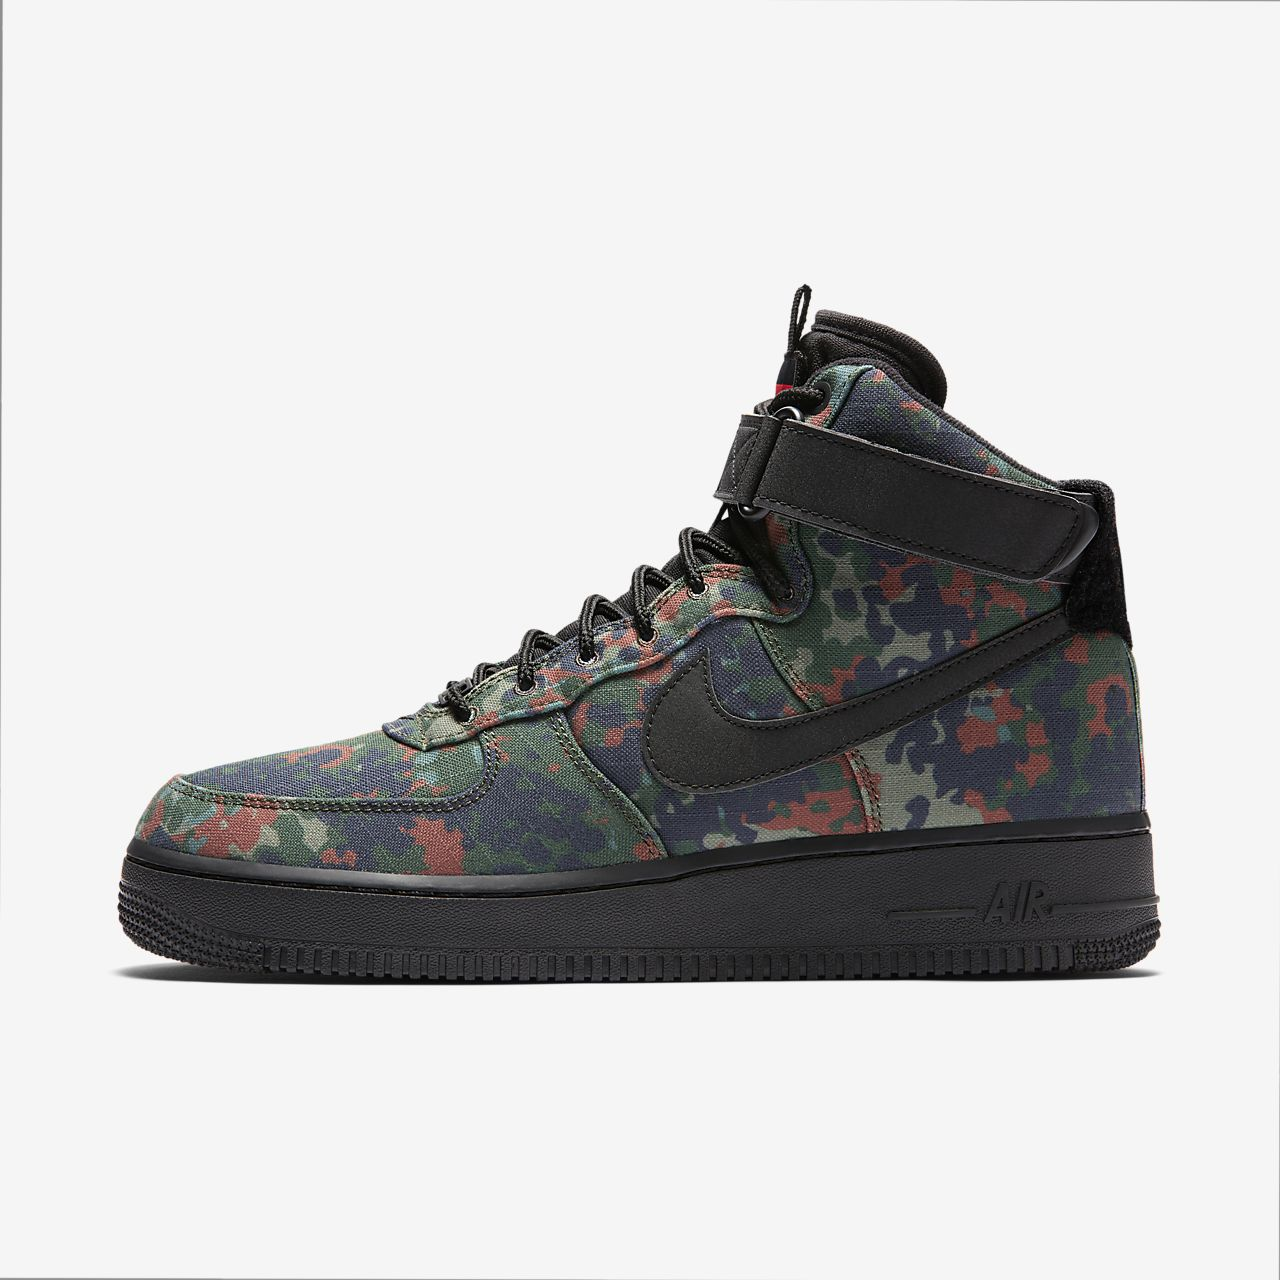 sports shoes dc9c9 98bbd ... Buty męskie Nike Air Force 1 High 07 LV8